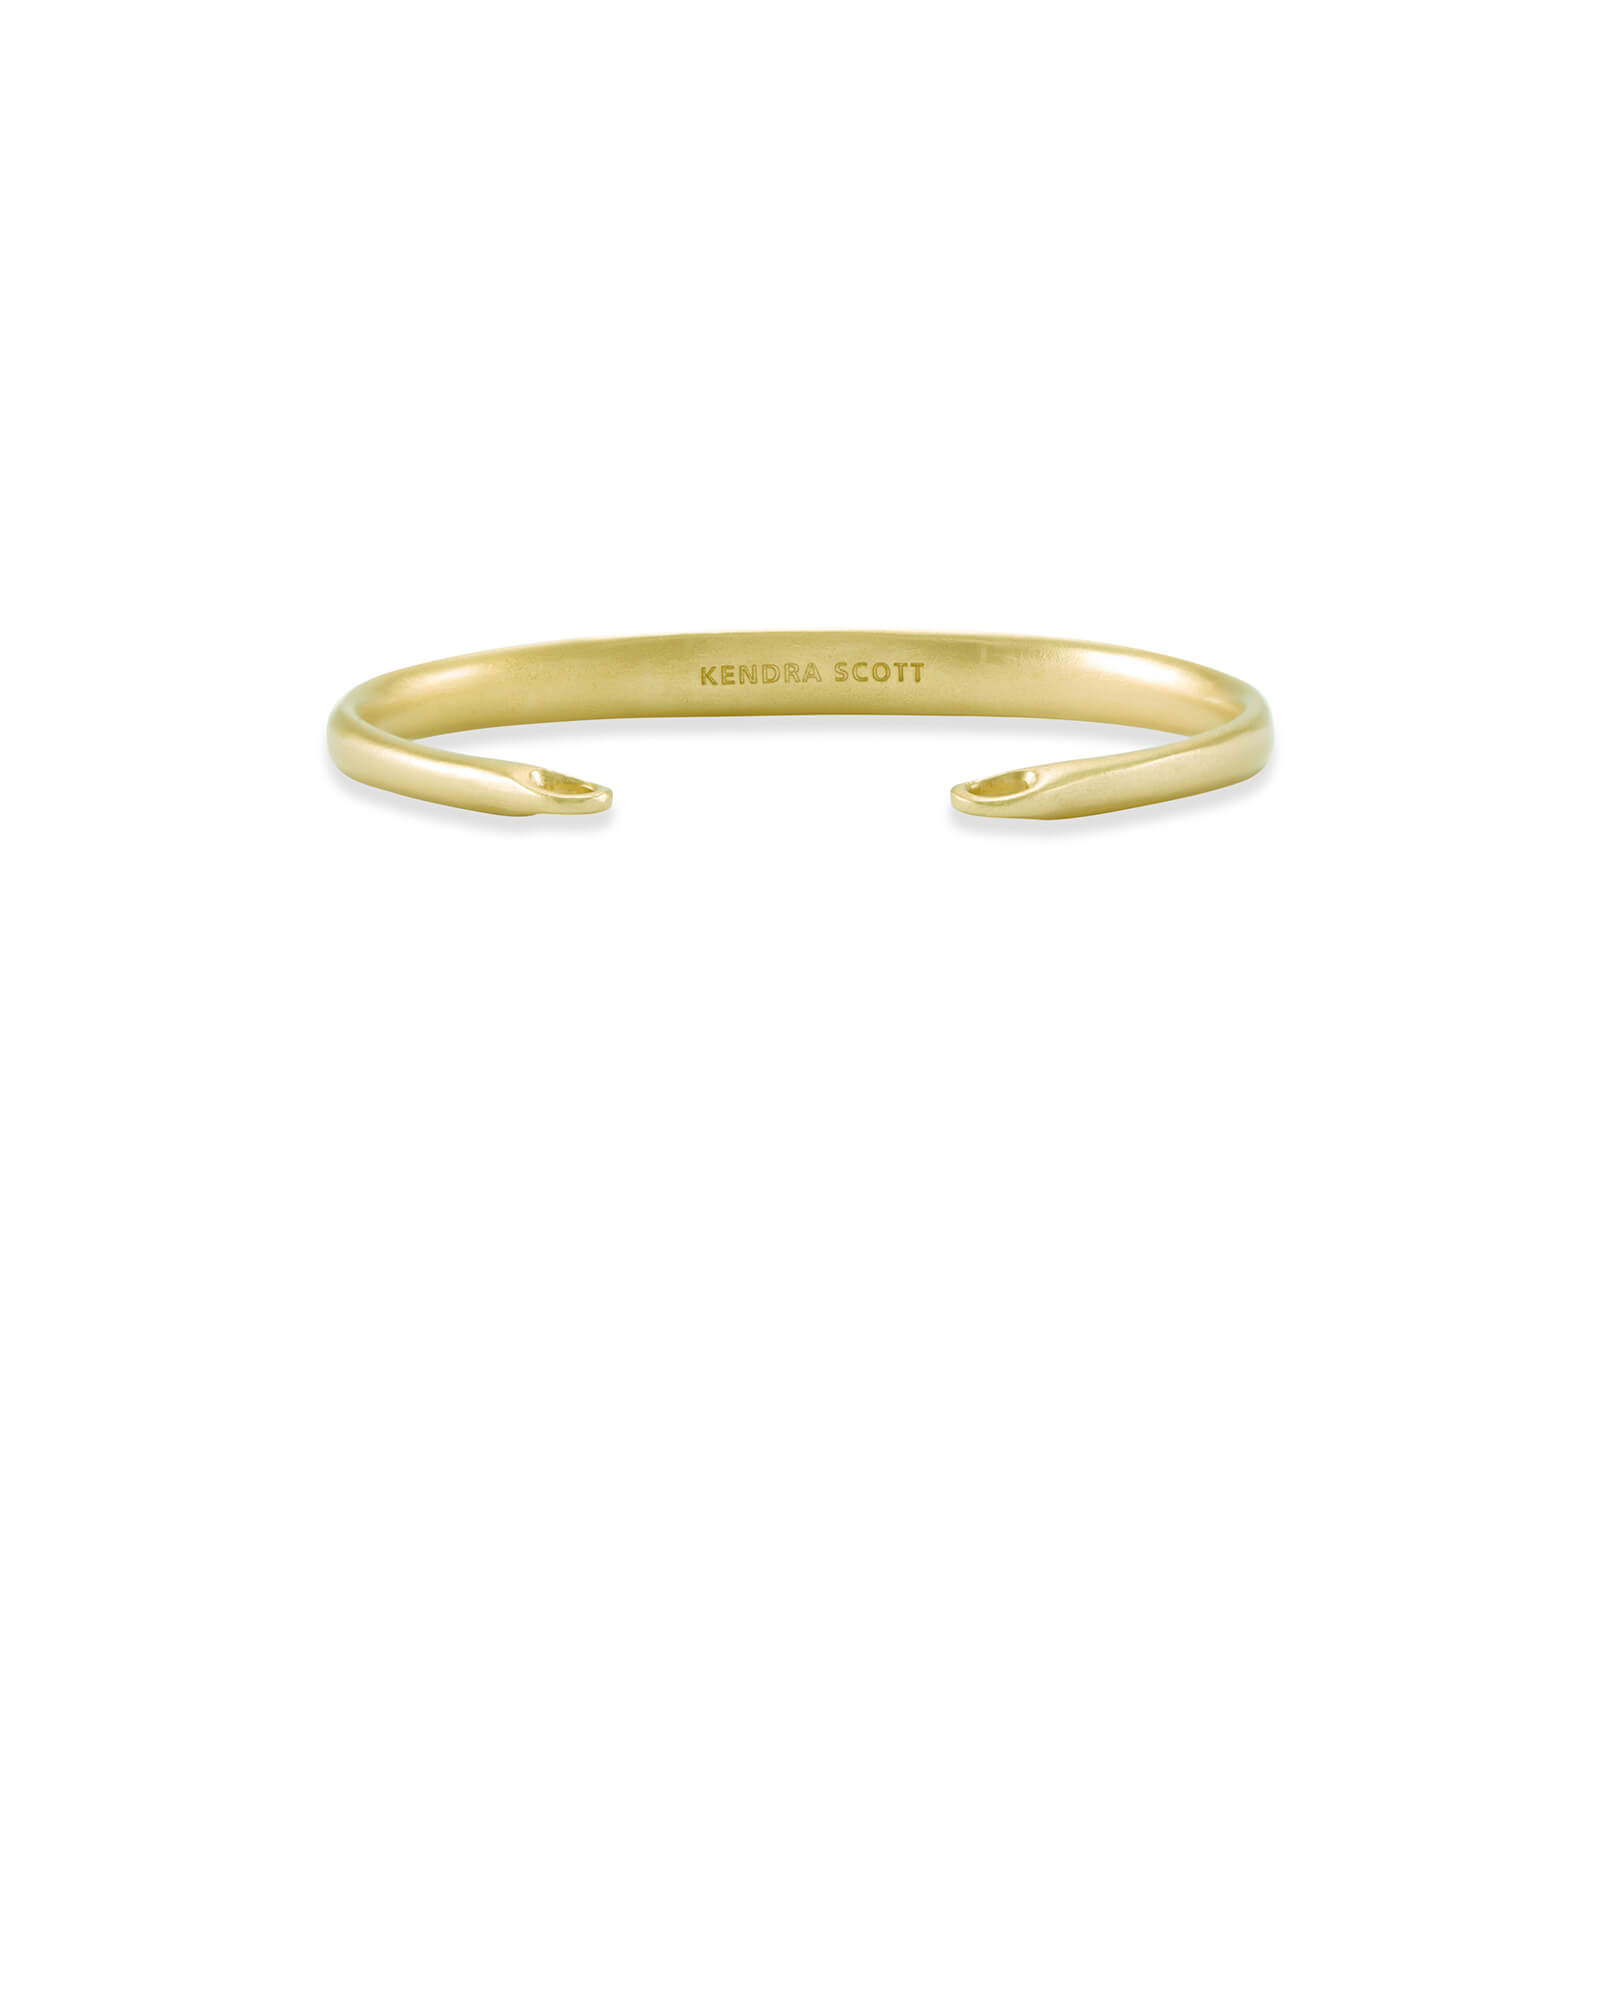 Pinch Cuff Bracelet in Gold